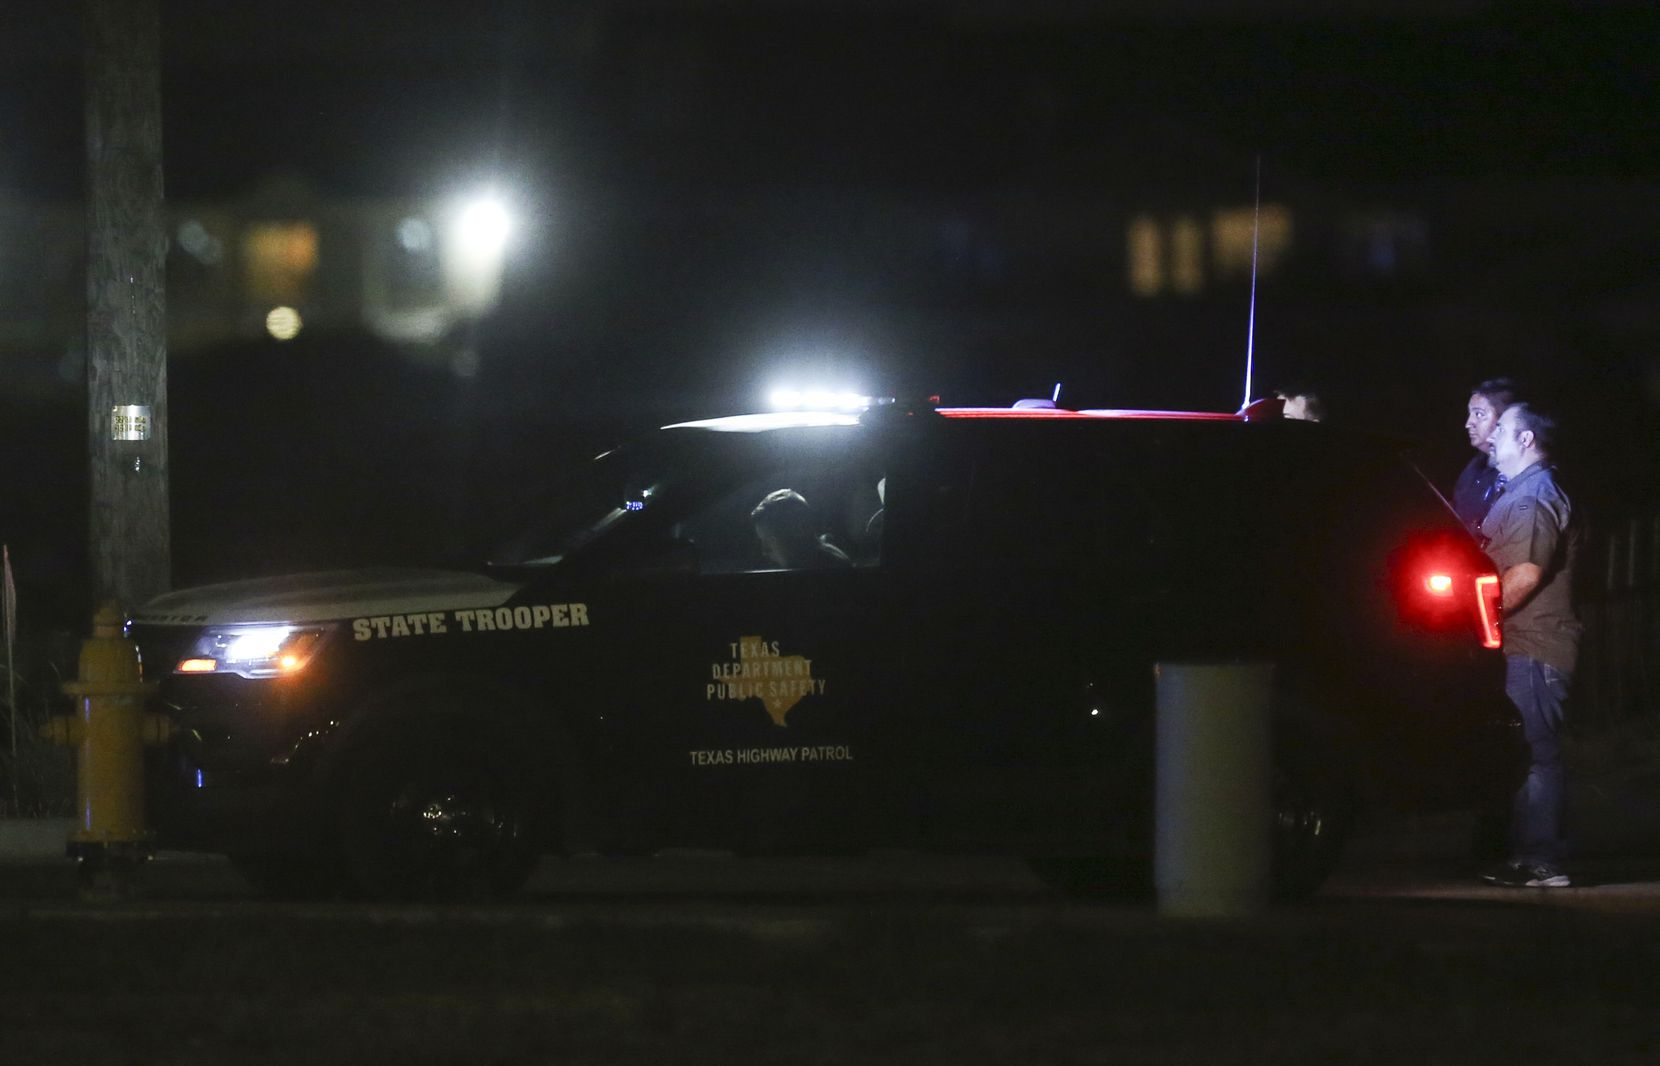 Police are seen Saturday, Aug. 31, 2019 at a Cinergy movie theatre in Odessa, Texas. At least five people died after more than 20 people were shot Saturday when a gunman hijacked a postal truck and began shooting randomly in the Odessa area of West Texas, authorities say.